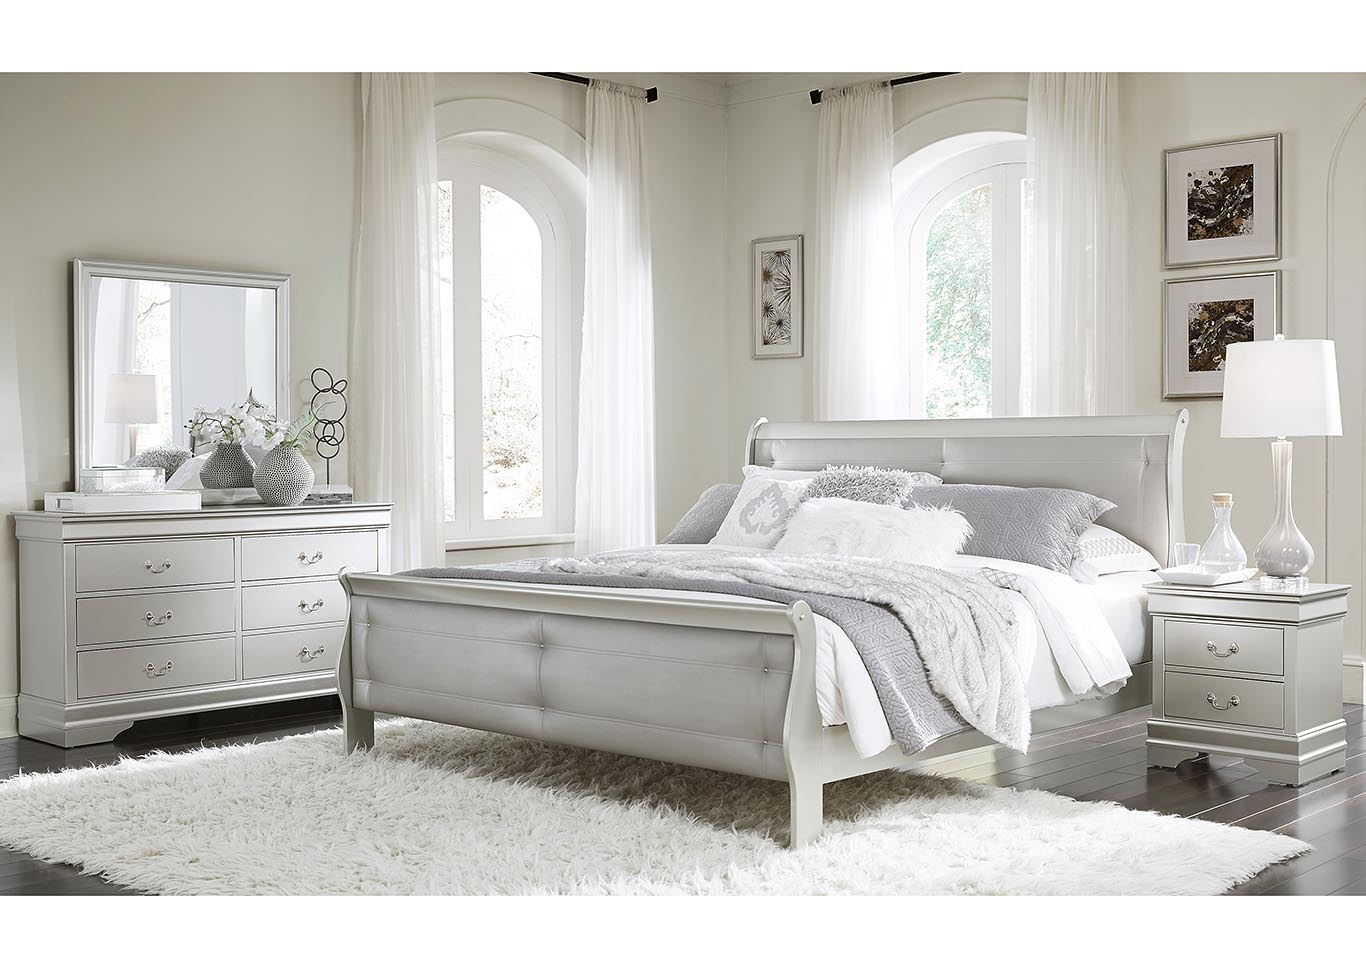 Marley Silver King Upholstery Panel Bed w/Dresser and Mirror,Global Furniture USA